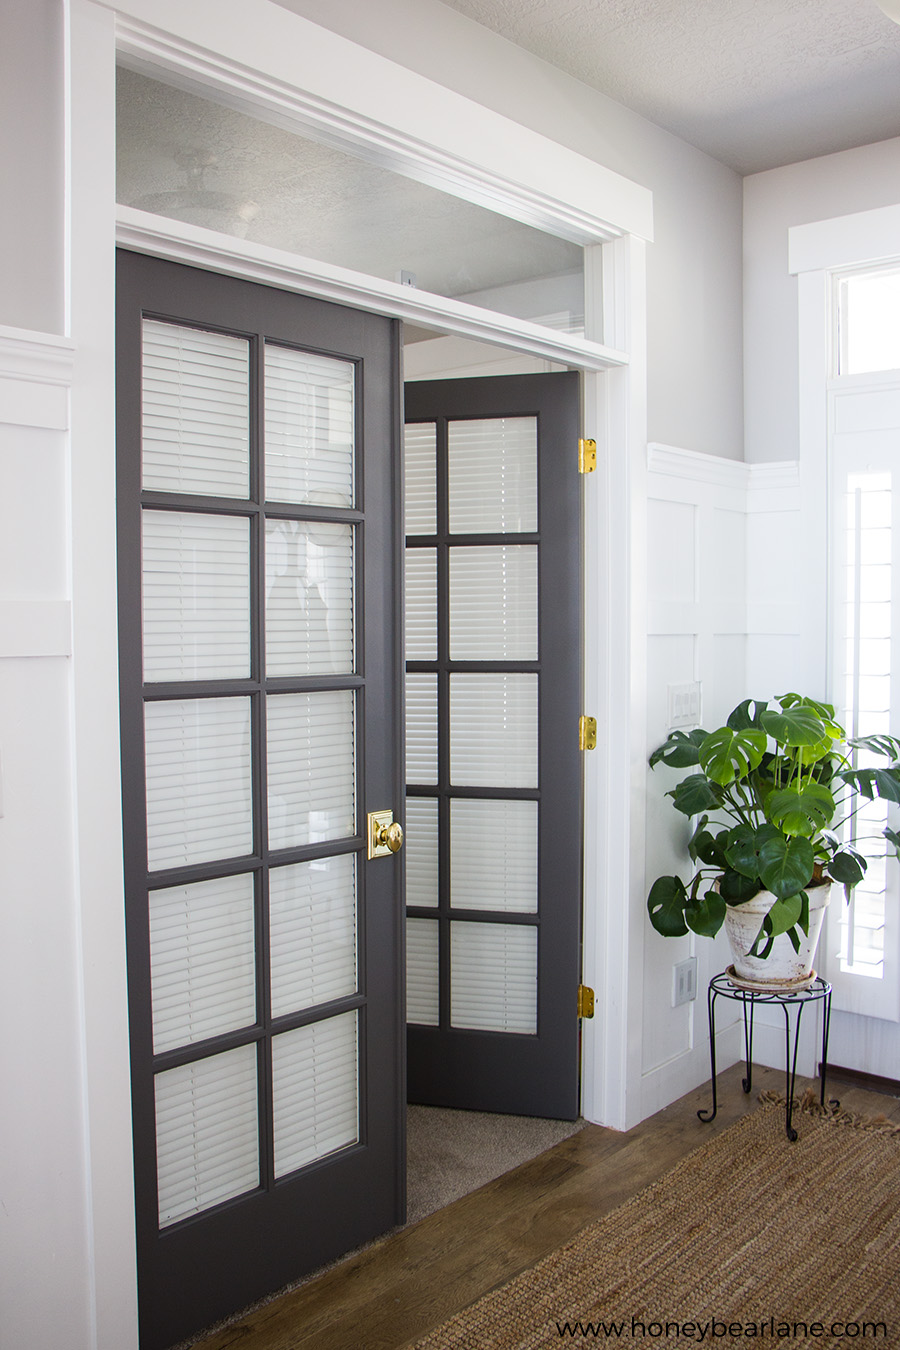 French Doors Makeover Honeybear Lane